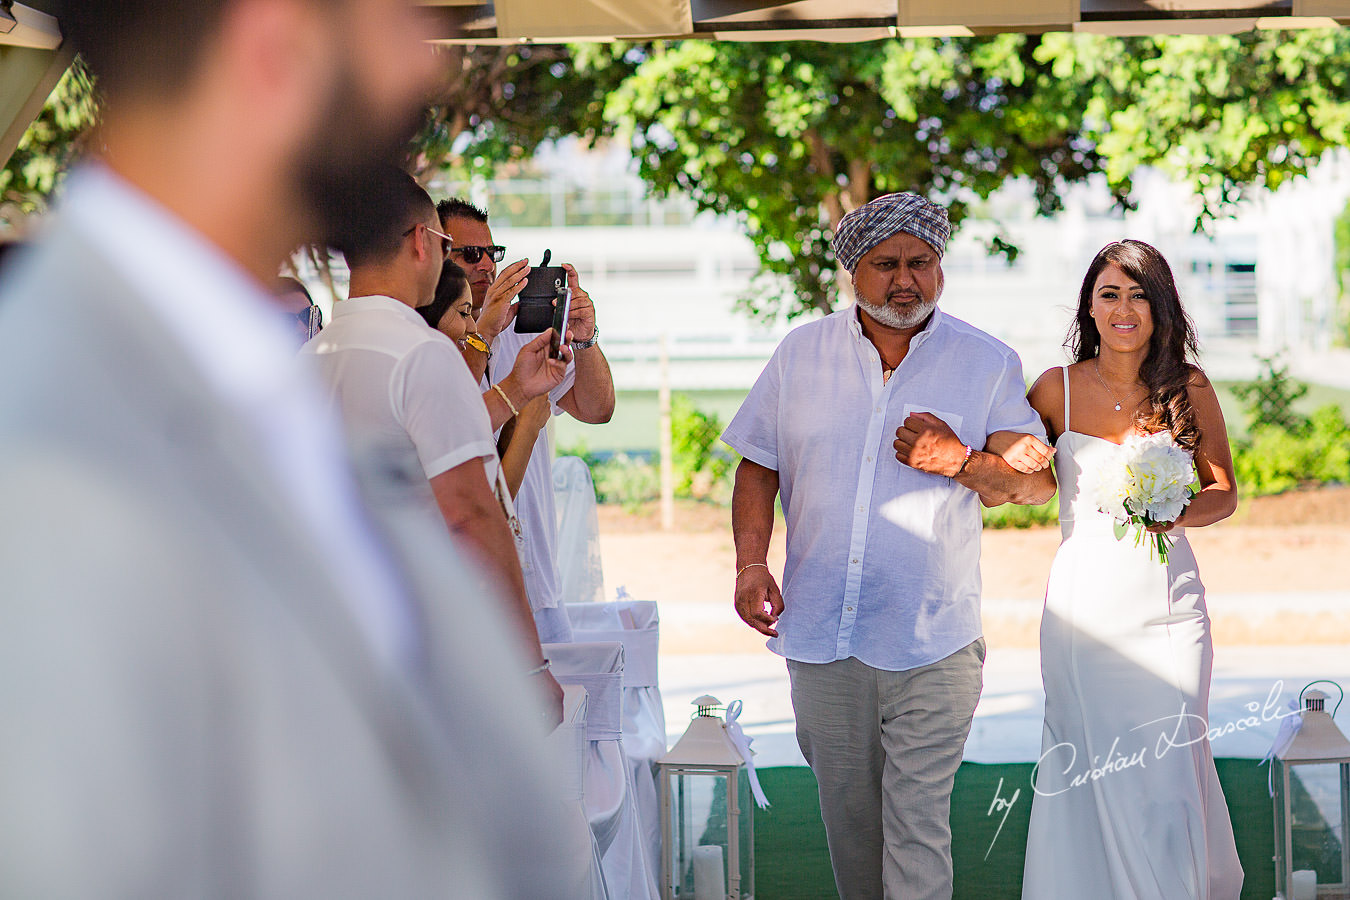 Bride's arrival, moments photographed by Cristian Dascalu at Athena Beach Hotel in Paphos, Cyprus, during a symbolic wedding.